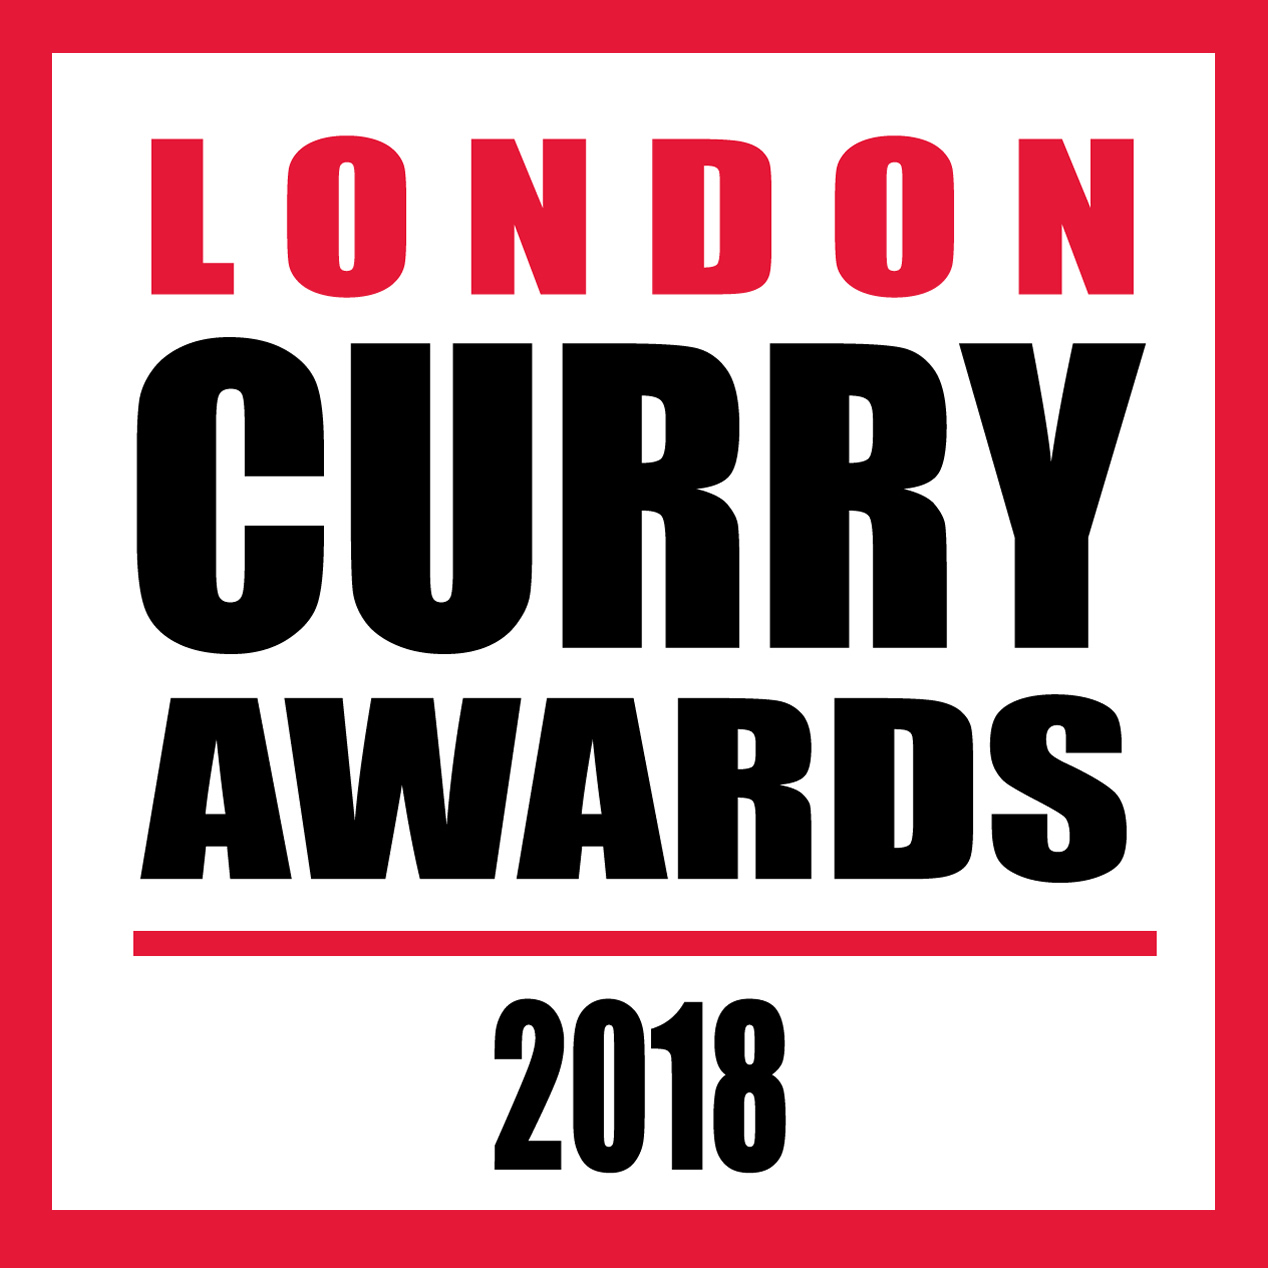 London Curry Awards